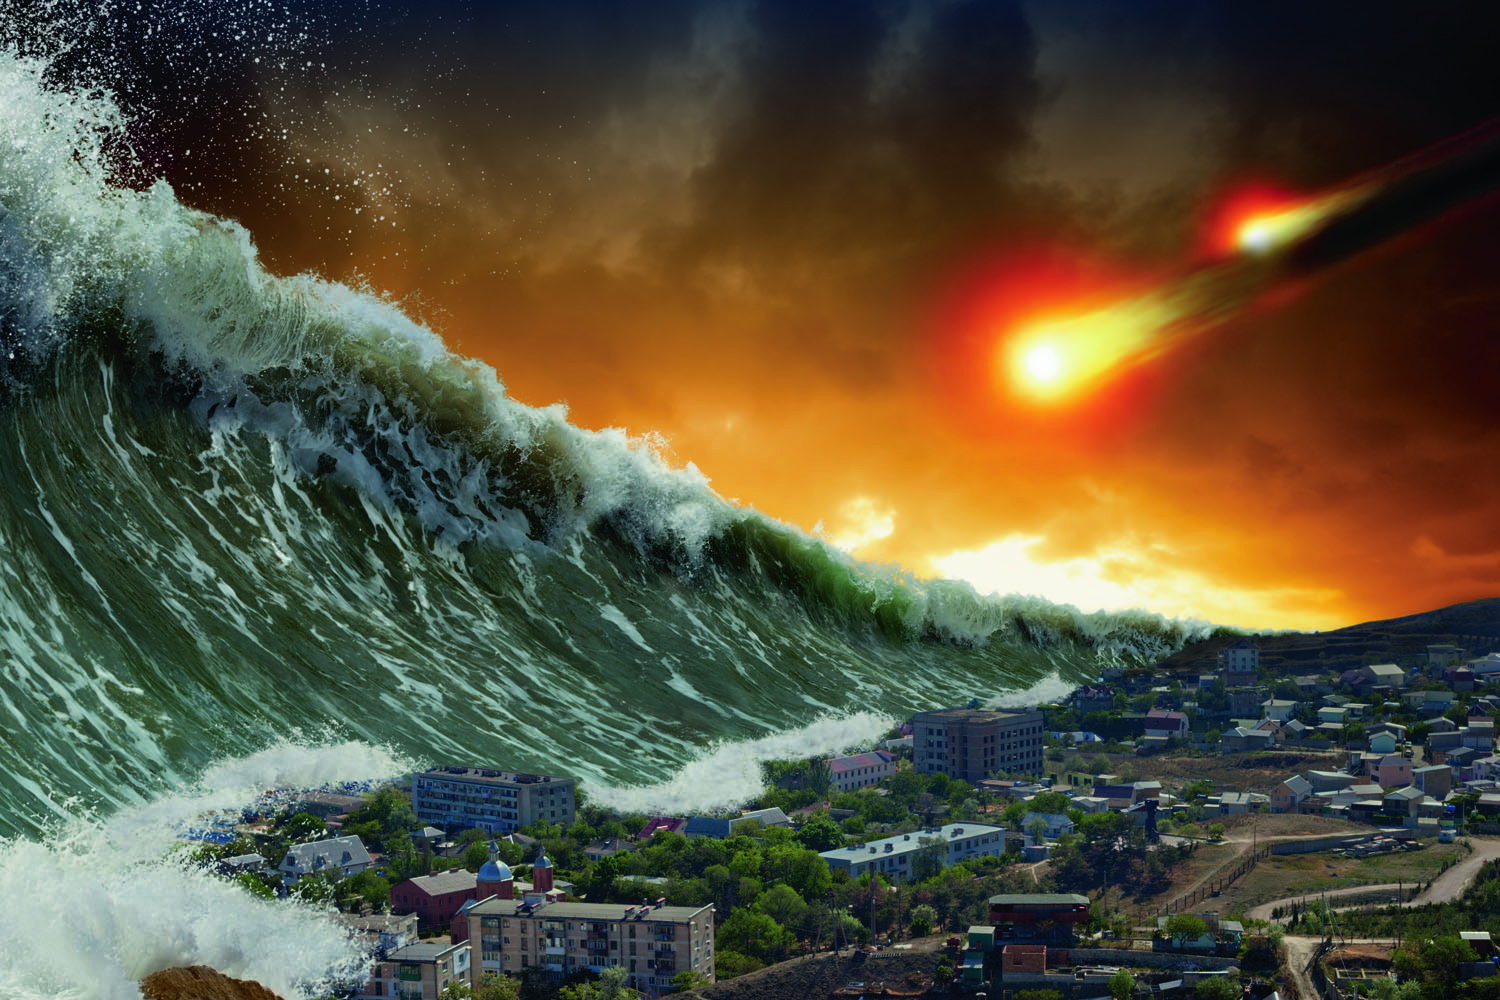 Caught between two mass extinctions – the rise and fall of Dicroidium